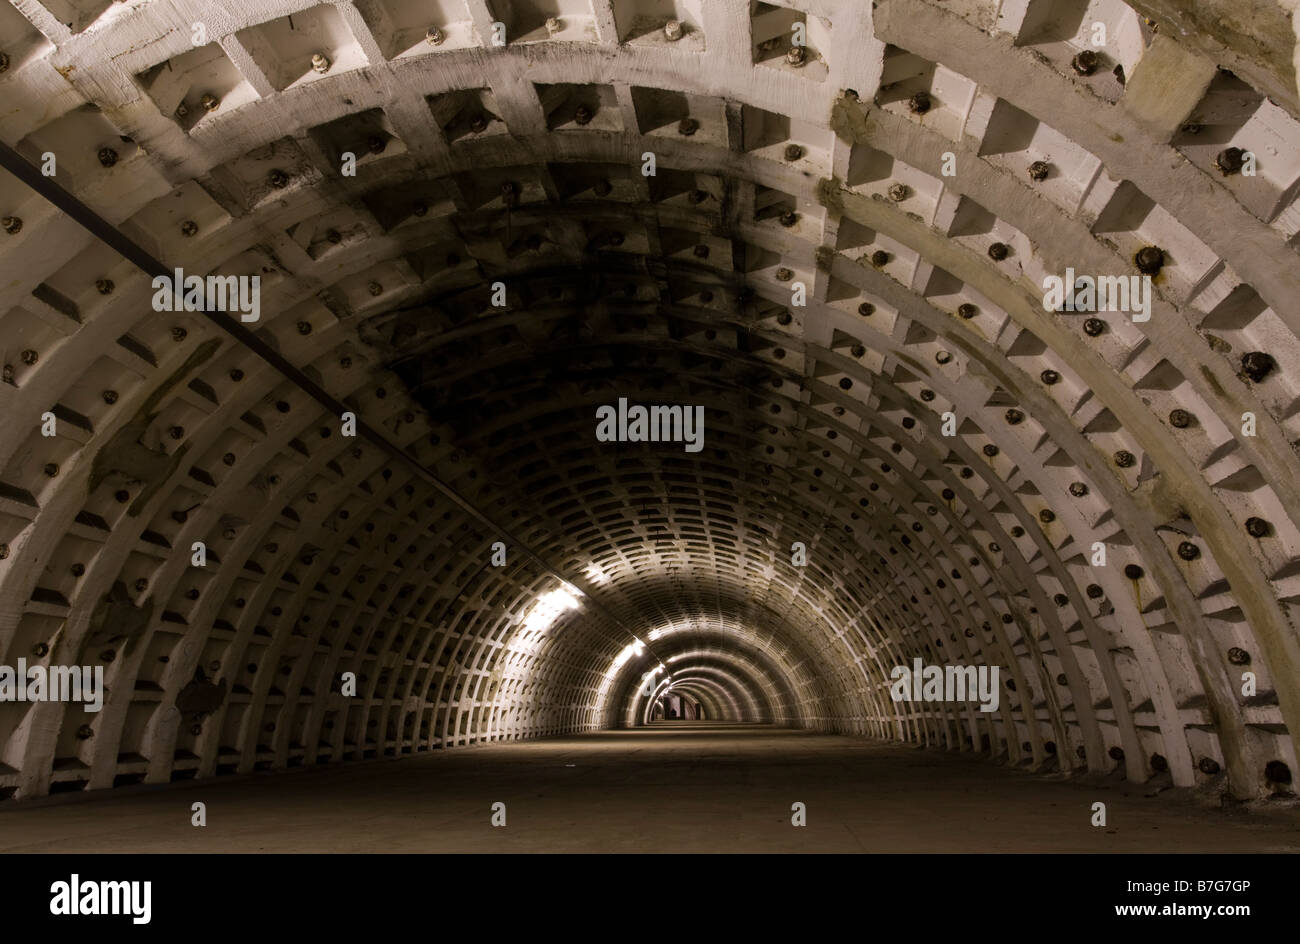 Clapham North Deep-Level WW2 air raid shelter. - Stock Image